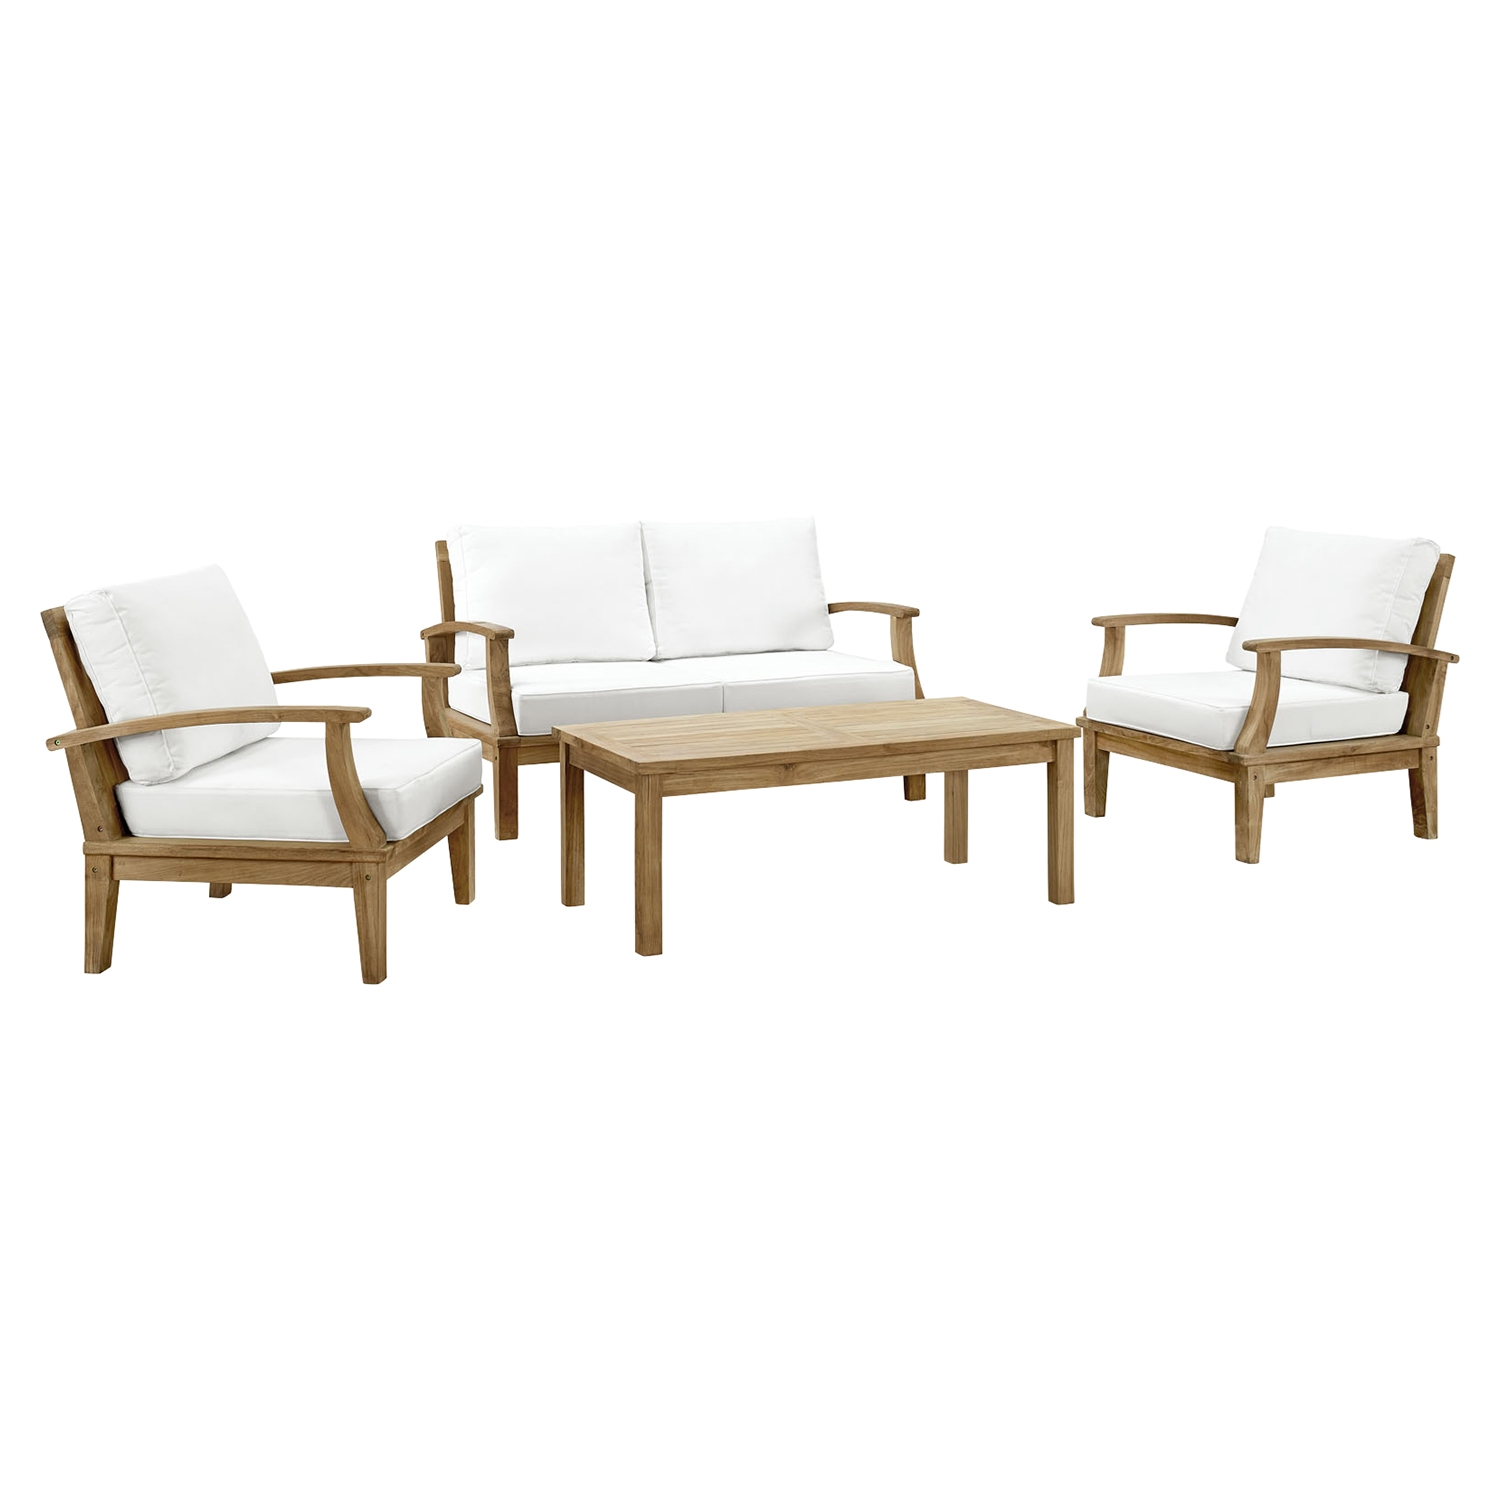 Marina 4 Pieces Outdoor Patio Sofa Set - White, Natural Frame - EEI-1469-NAT-WHI-SET